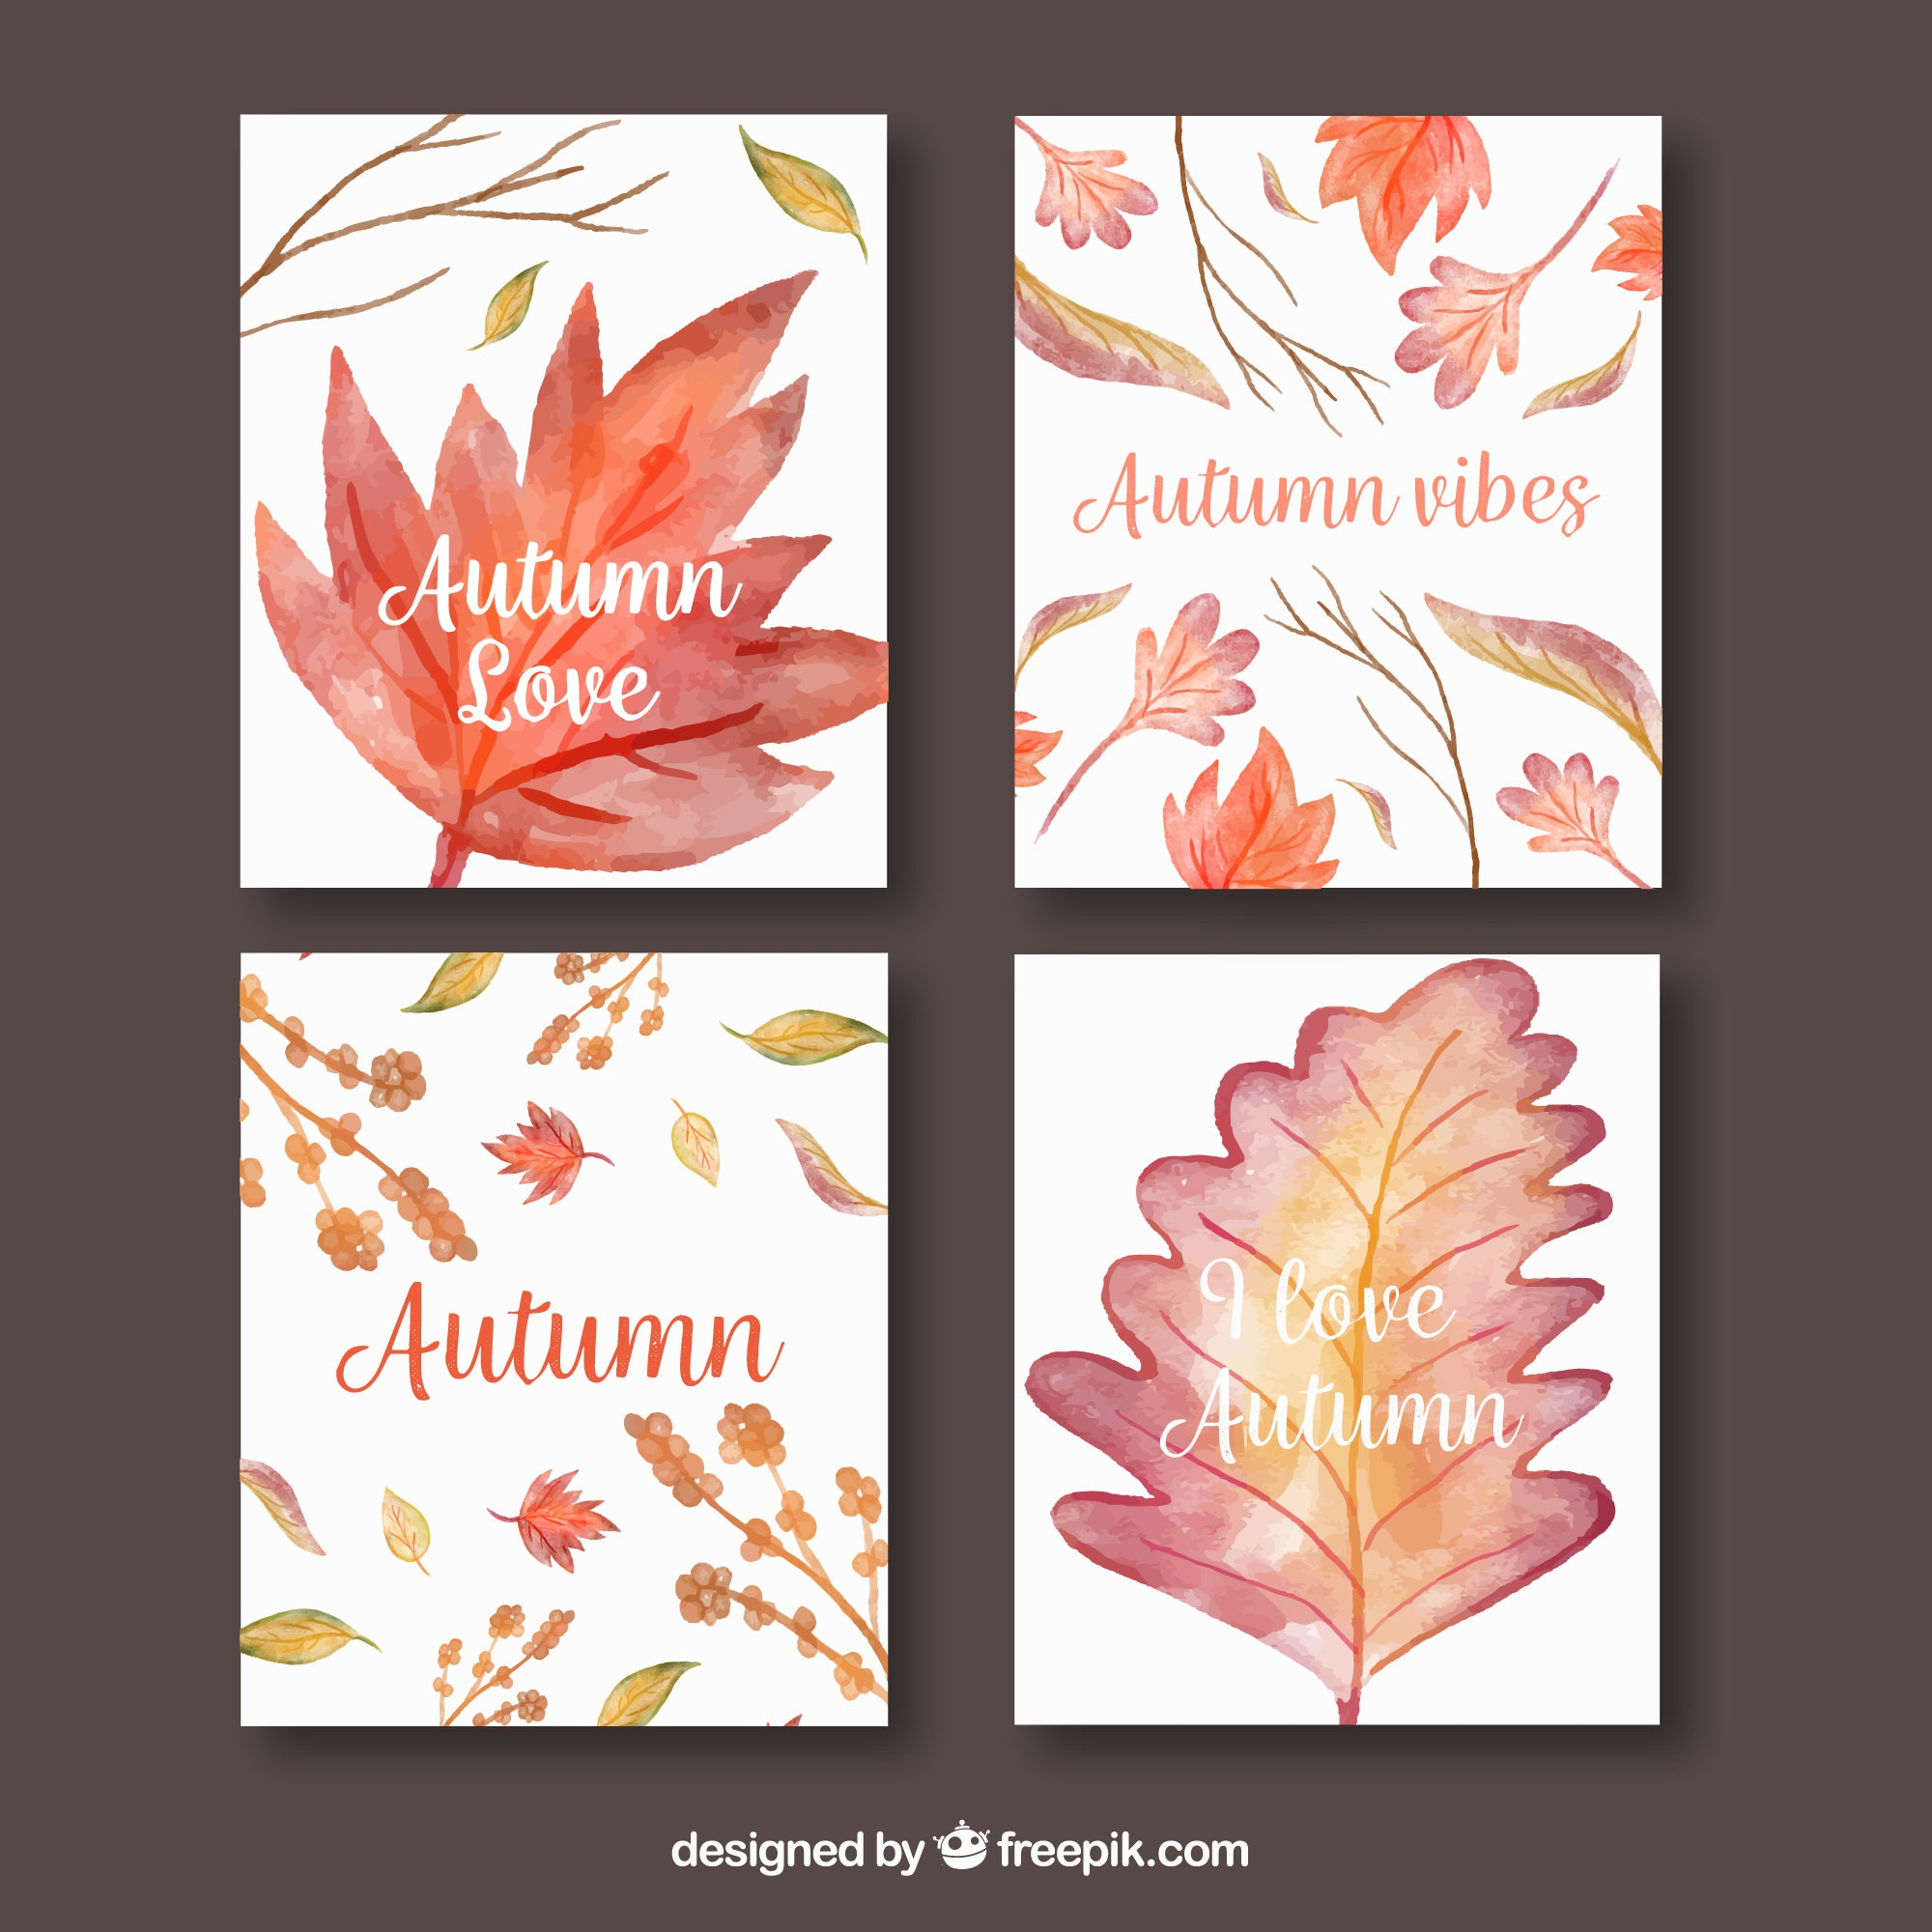 Autumn cards collection with watercolor leaves